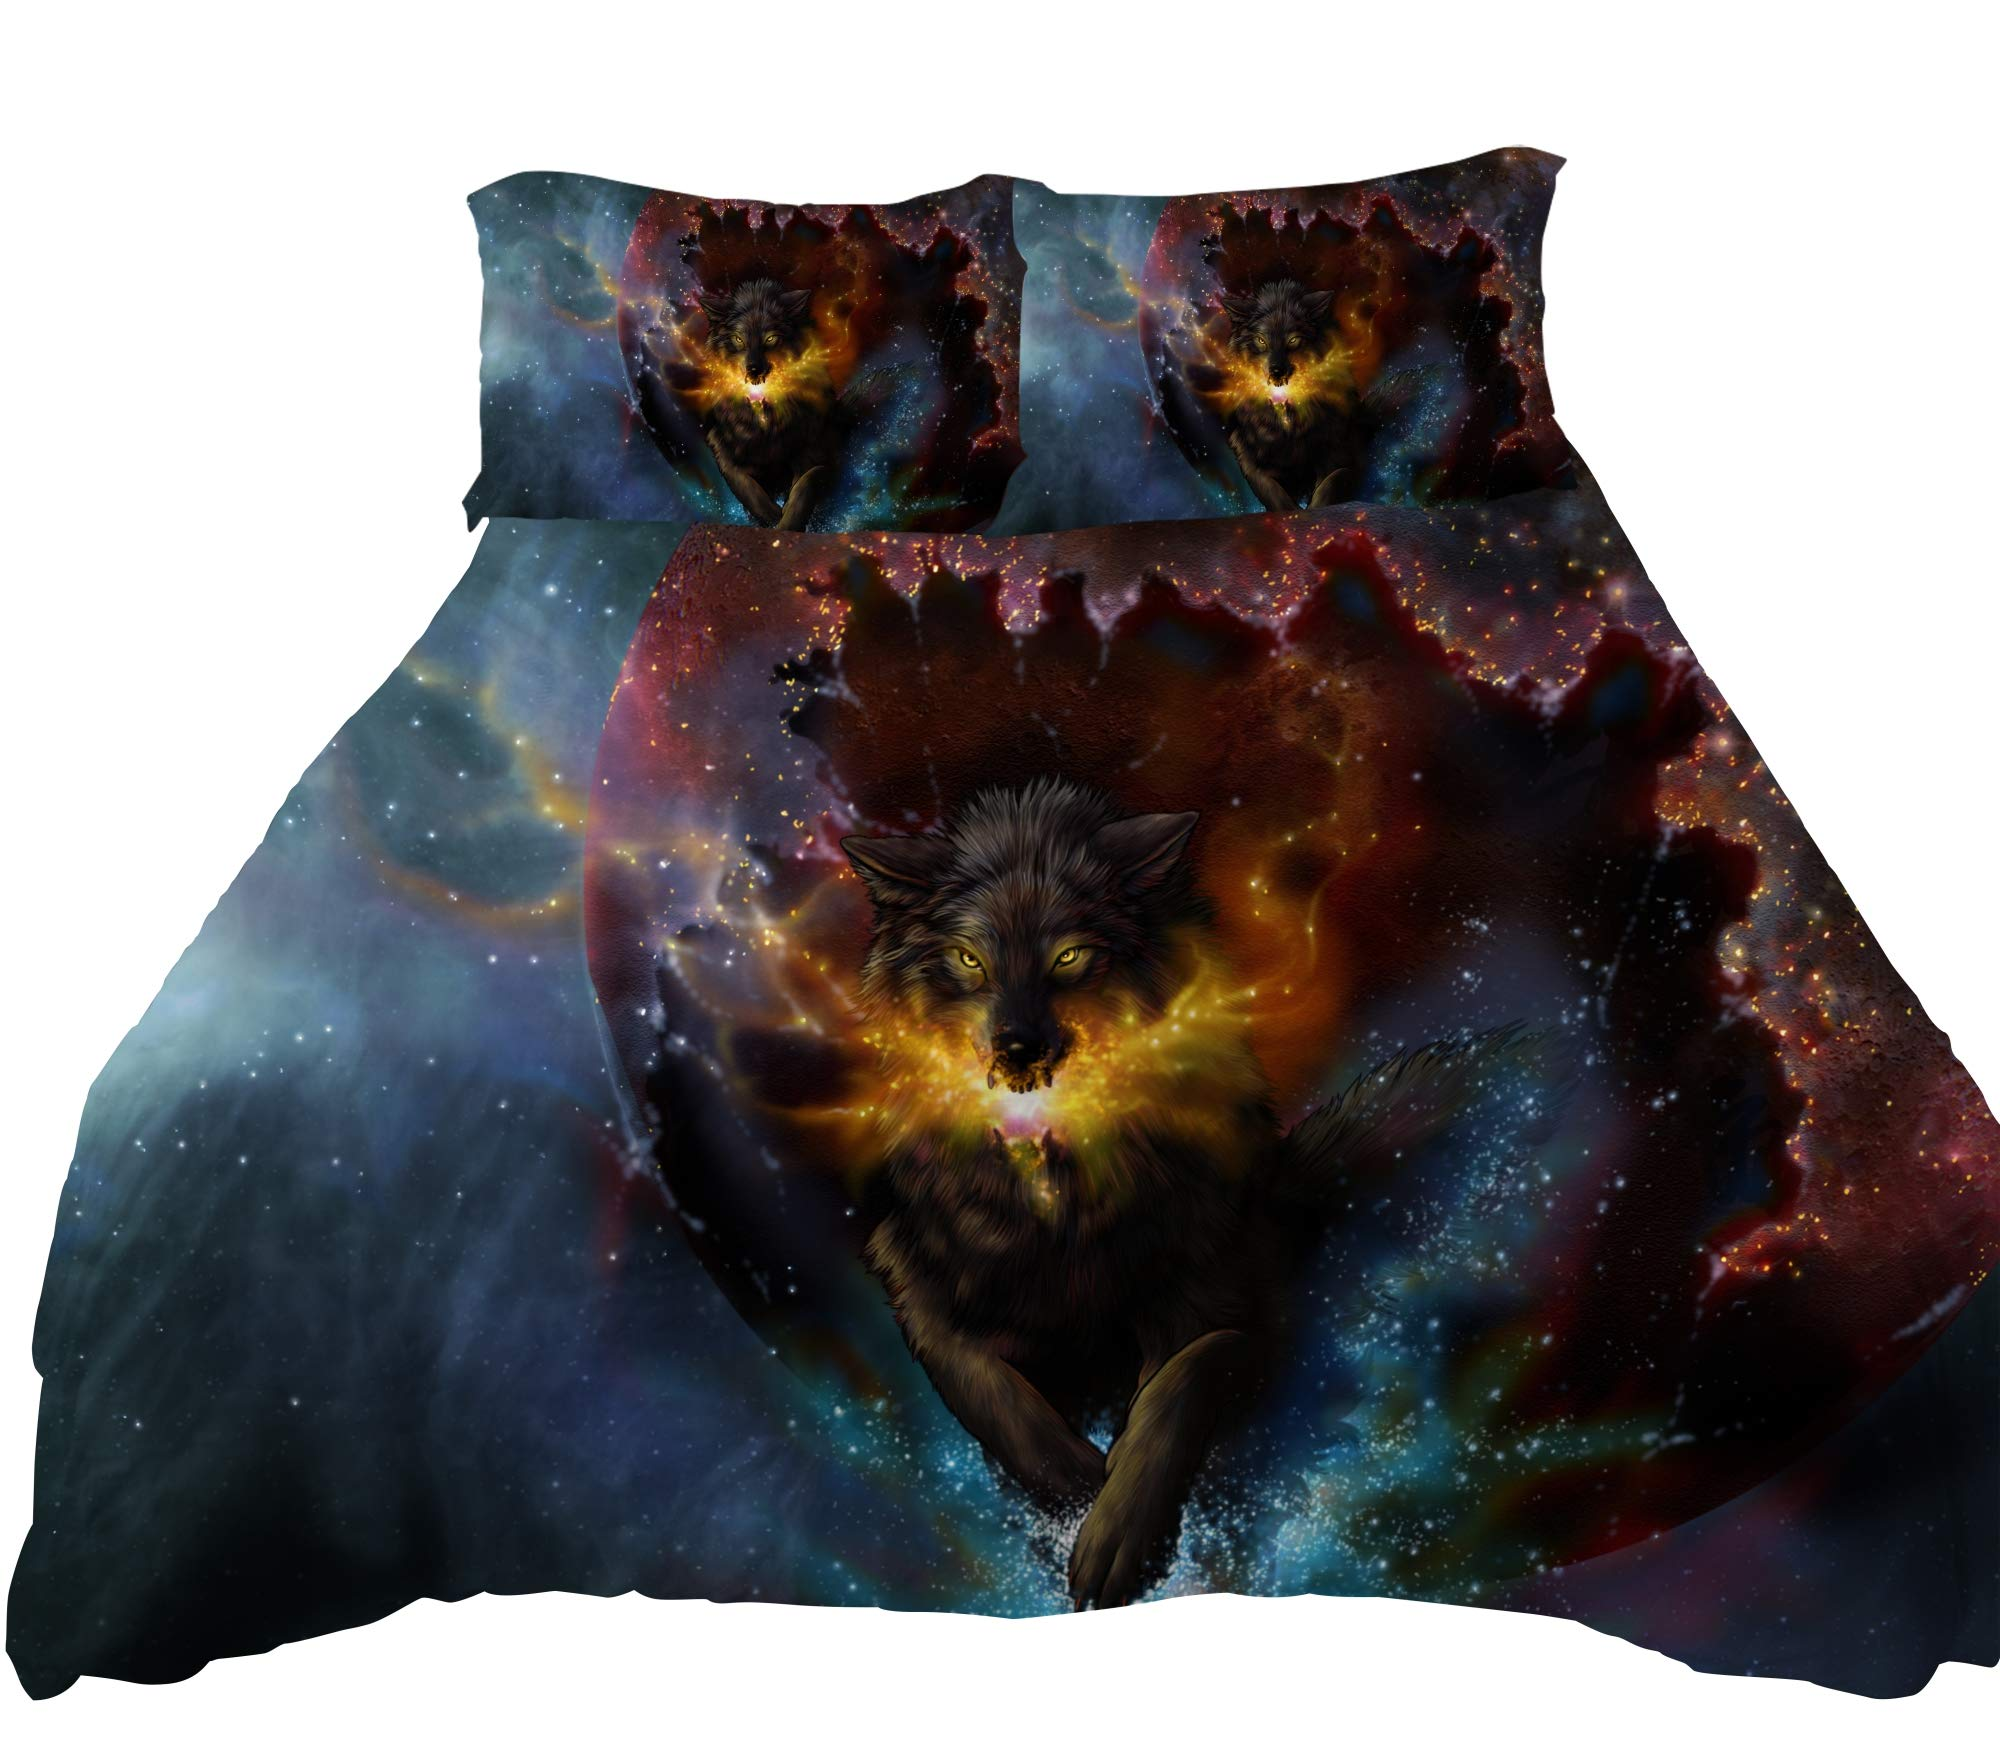 ANOLE 3 Pcs Soft Luxury Youth 100% Polyester Shell Fully Reversible 3-Piece Modern 3D Wolf Print Duvet Cover Set Twin Size Full Size Queen Size King Size Blue No Comforter … (Wolf-Blue, Full)